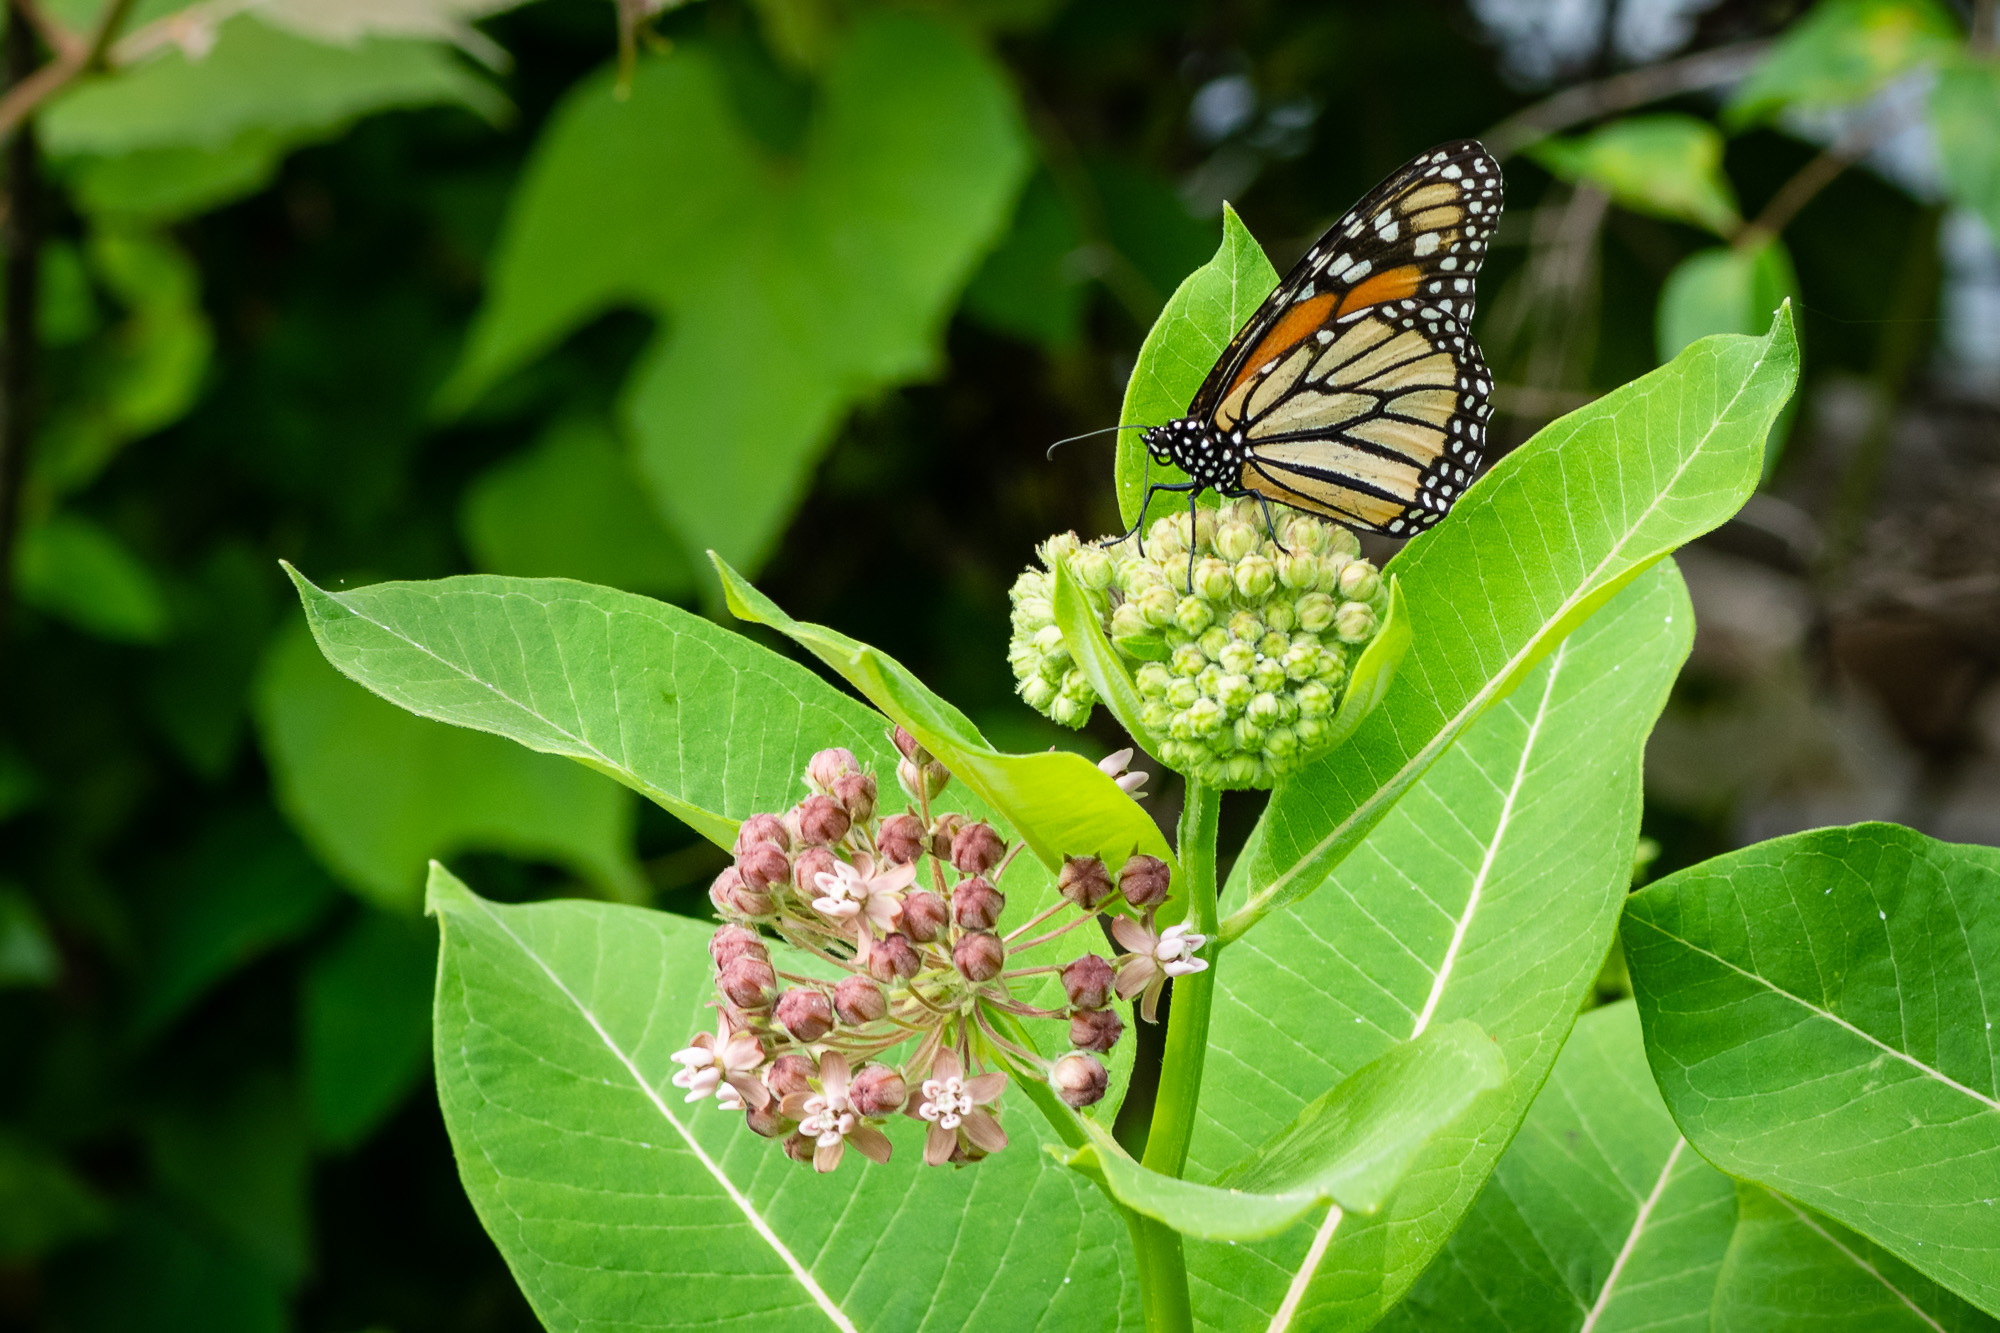 A Monarch butterfly on milkweed.